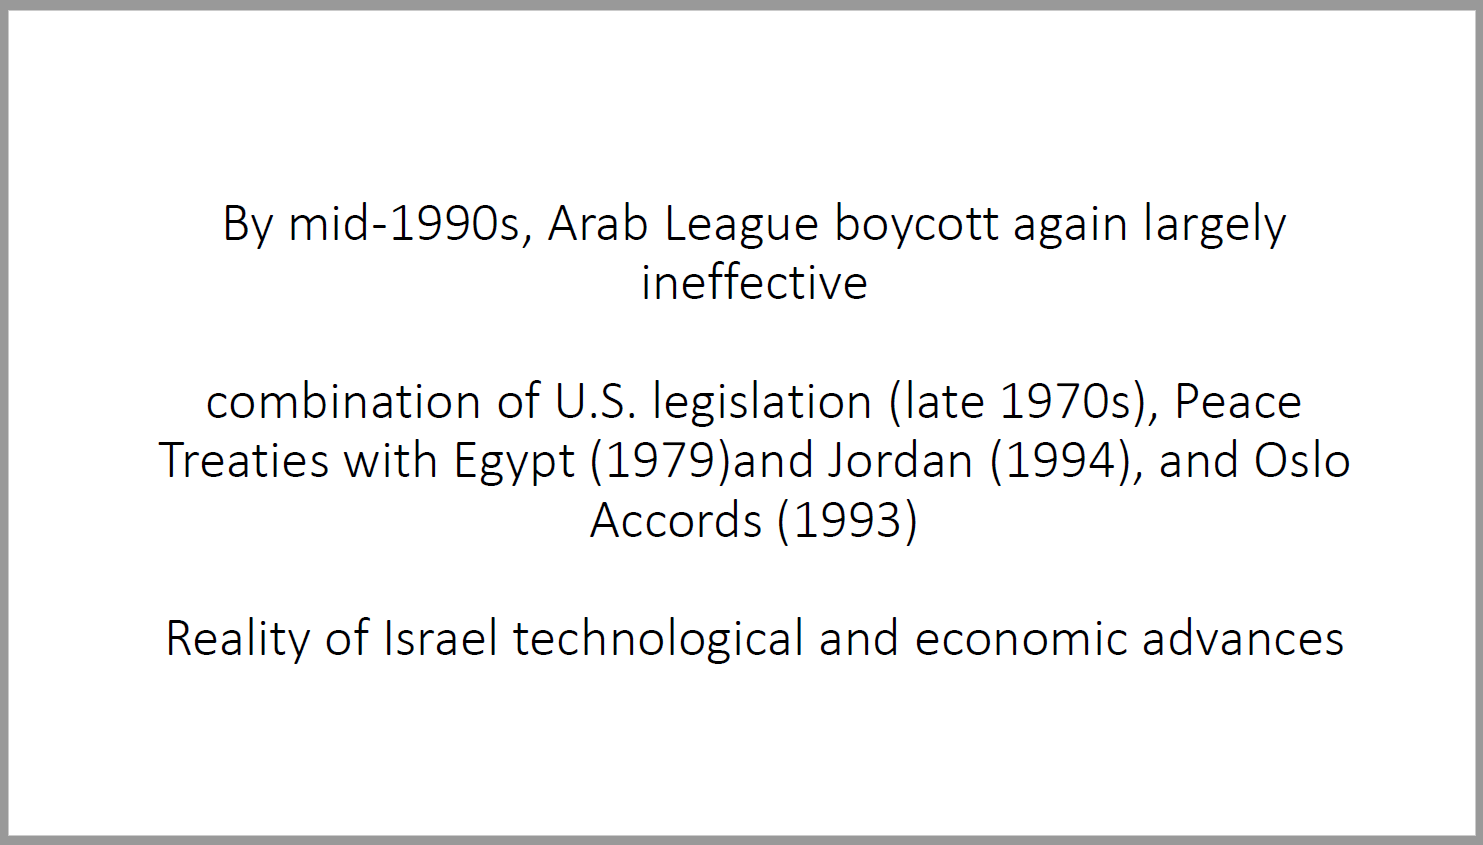 bds-history-slide-arab-league-boycott-by-1990s